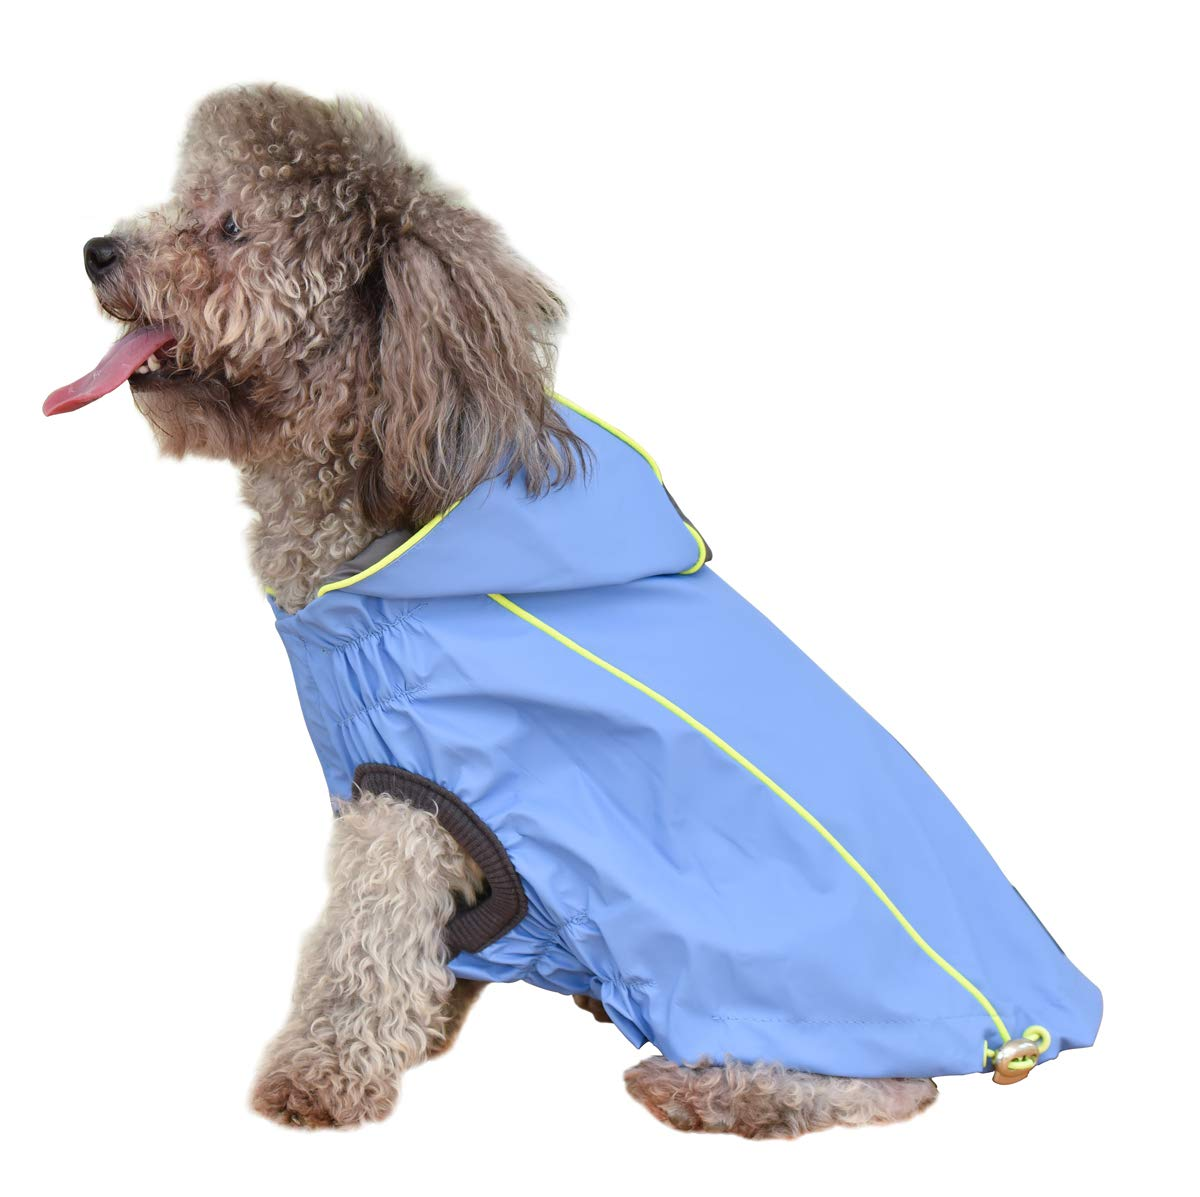 OSPet Dog Raincoat Waterproof Windproof Lightweight Dog Coat Jacket Double-Sided Jacket with Hood Vest Harness for Small Medium Dogs by OSPet